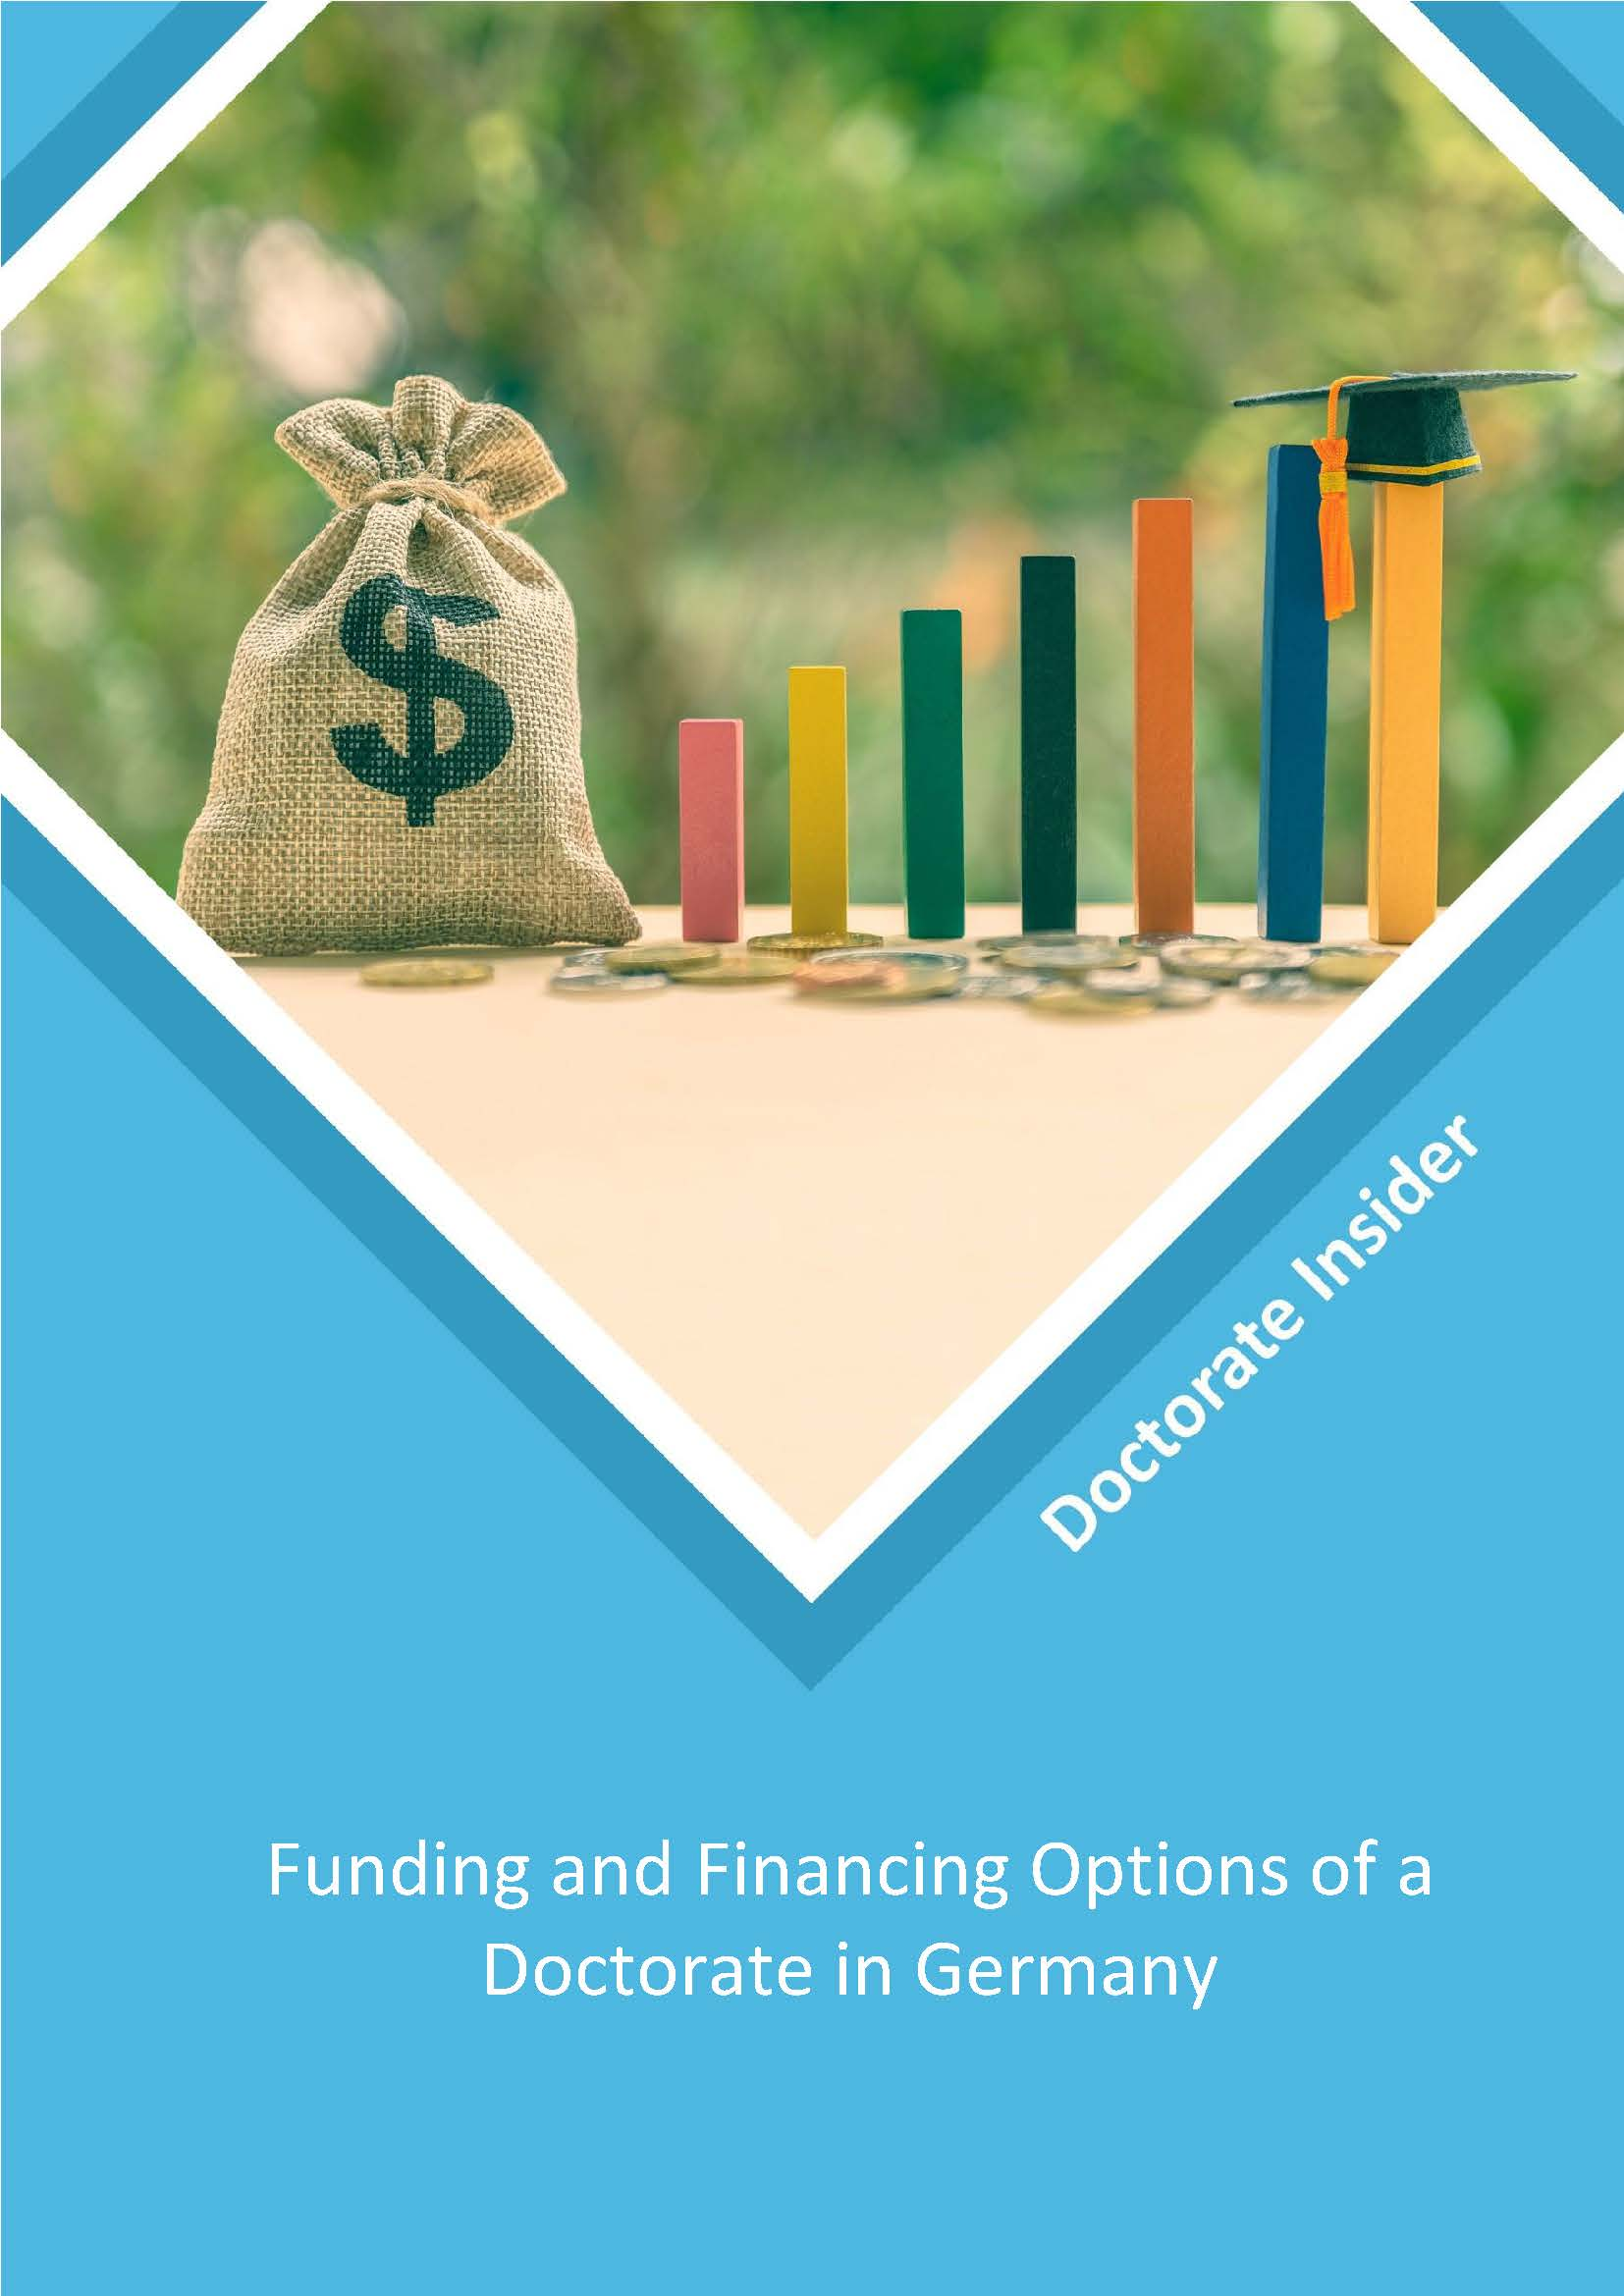 FUNDING AND FINANCING OPTIONS OF A DOCTORATE IN GERMANY